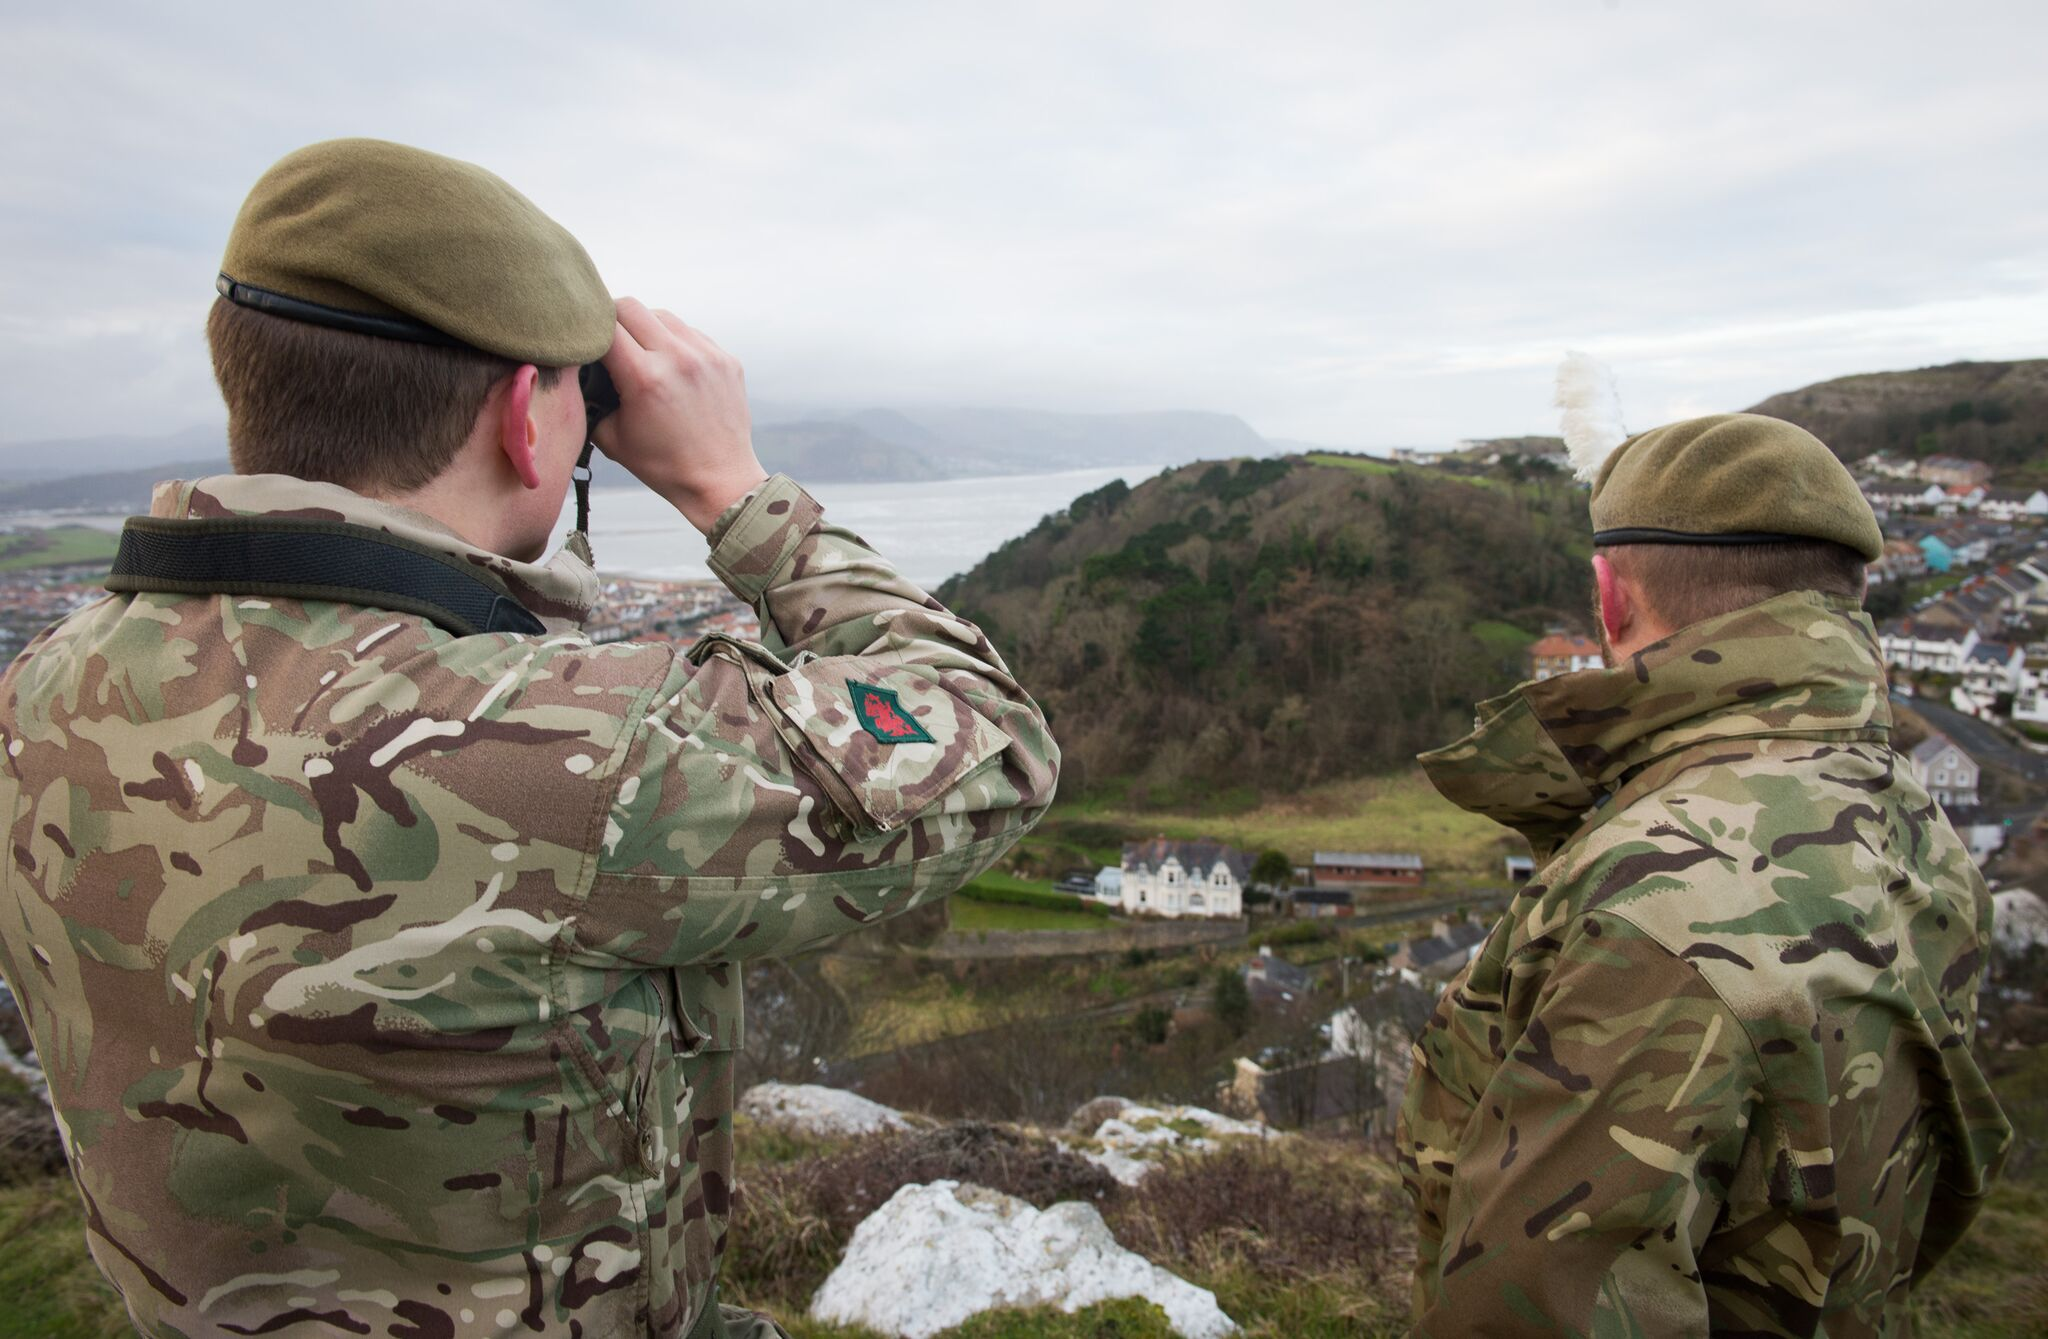 Members of the 3rd Battalion The Royal Welsh on the hunt for their new regimental mascot, Fusilier Shenkin IV, a Kashmir kid goat (Corporal Dek Traylor/PA)